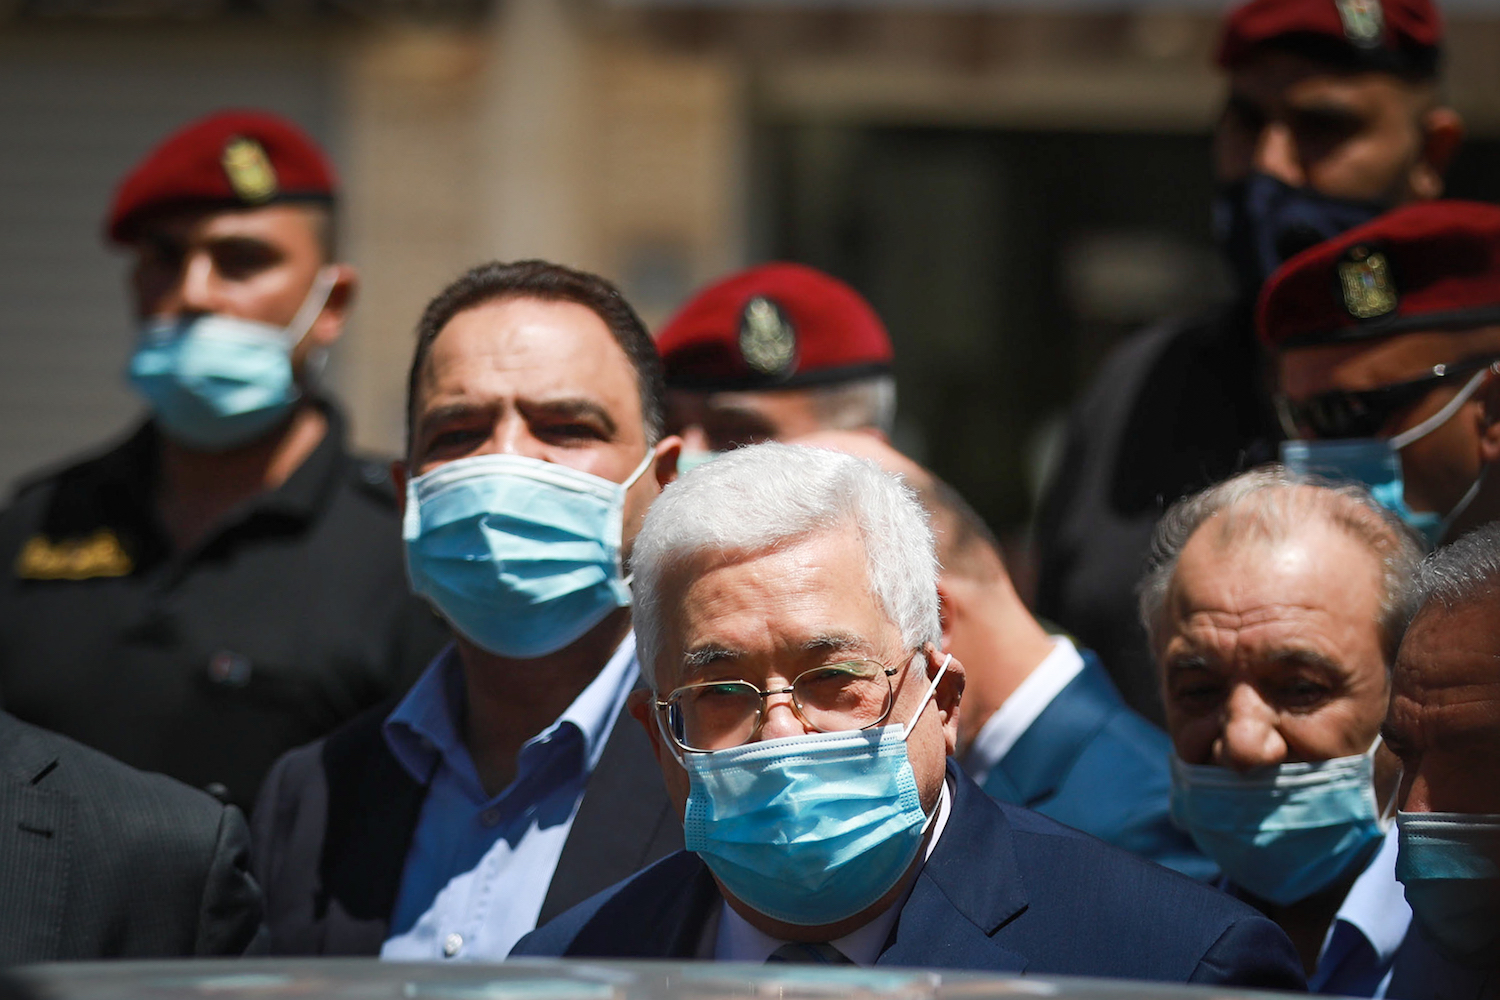 Palestinian president Mahmoud Abbas seen during a tour of Ramallah in the occupied West Bank, May 15, 2020. (Flash90)